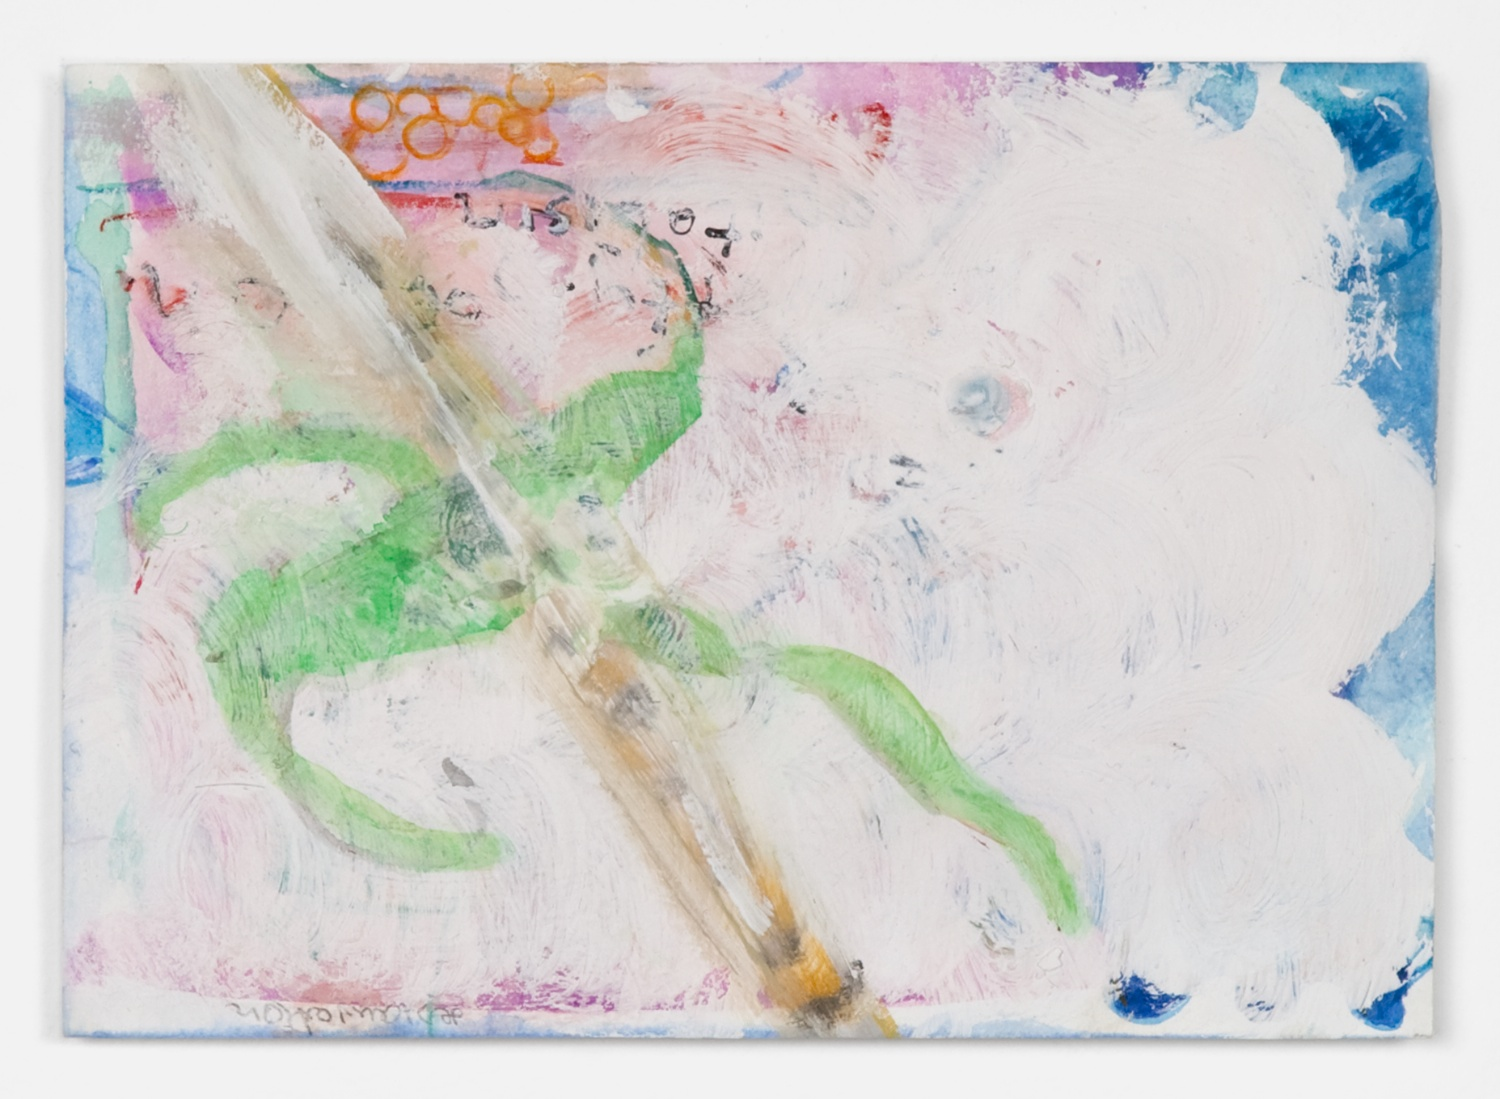 Helena Huneke  The Painter  2012 Gouache, watercolor, and acrylic tape on paper 5 ⅞h x 8 ¼w in HH003